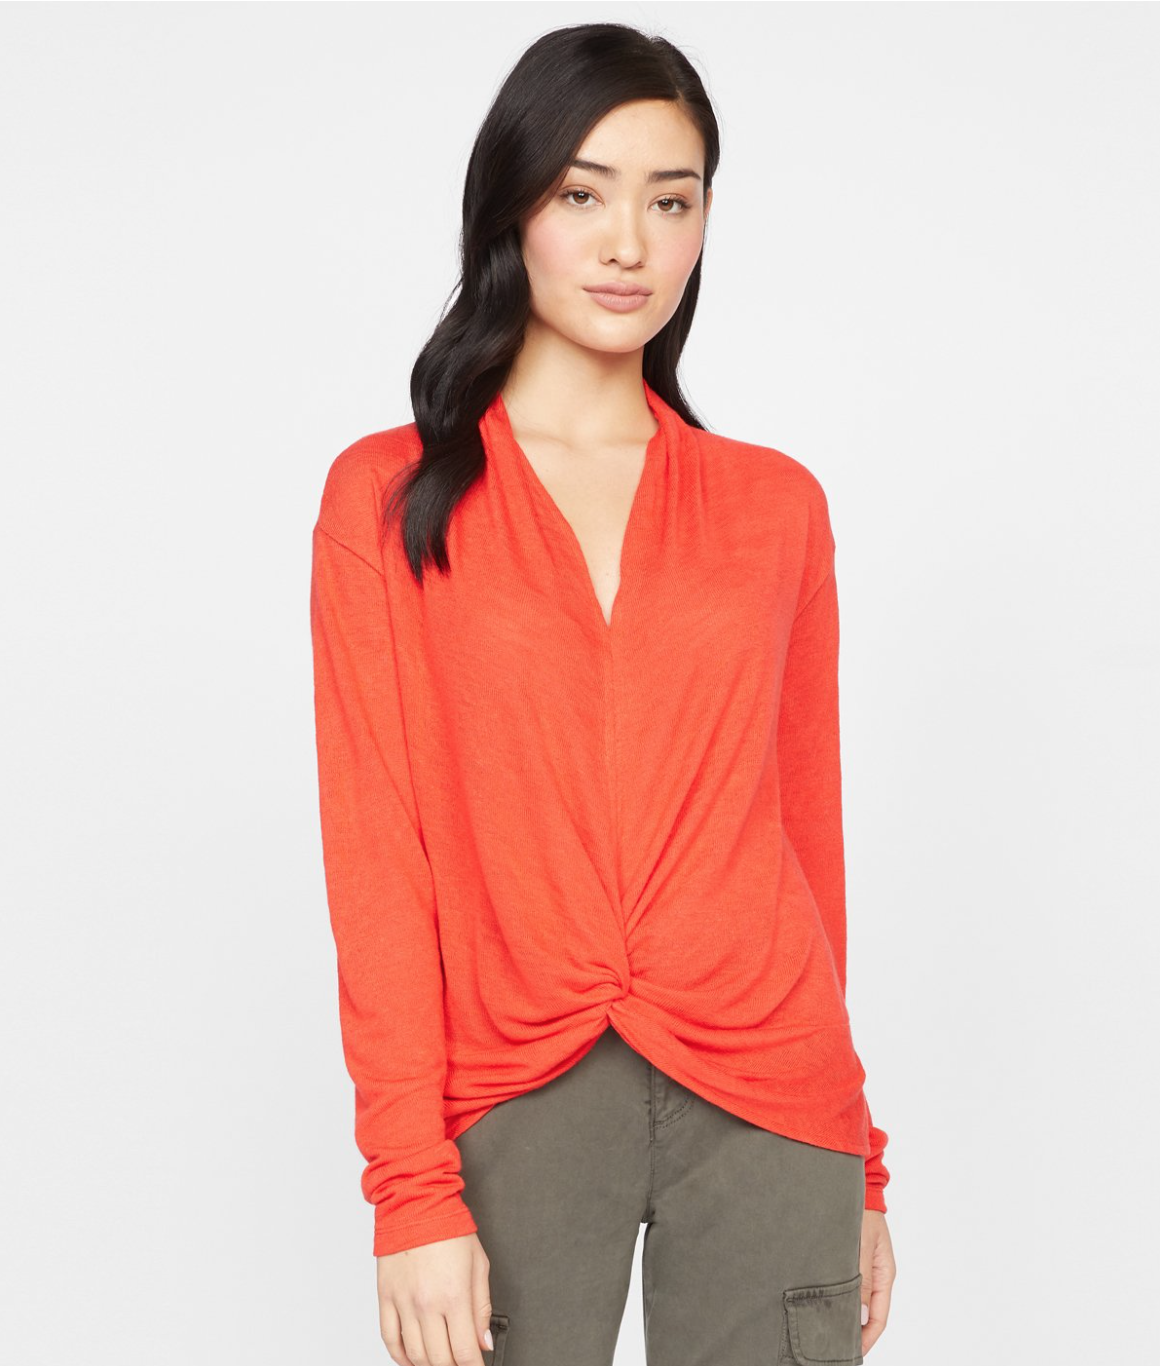 Red 'Knot Interested' Top